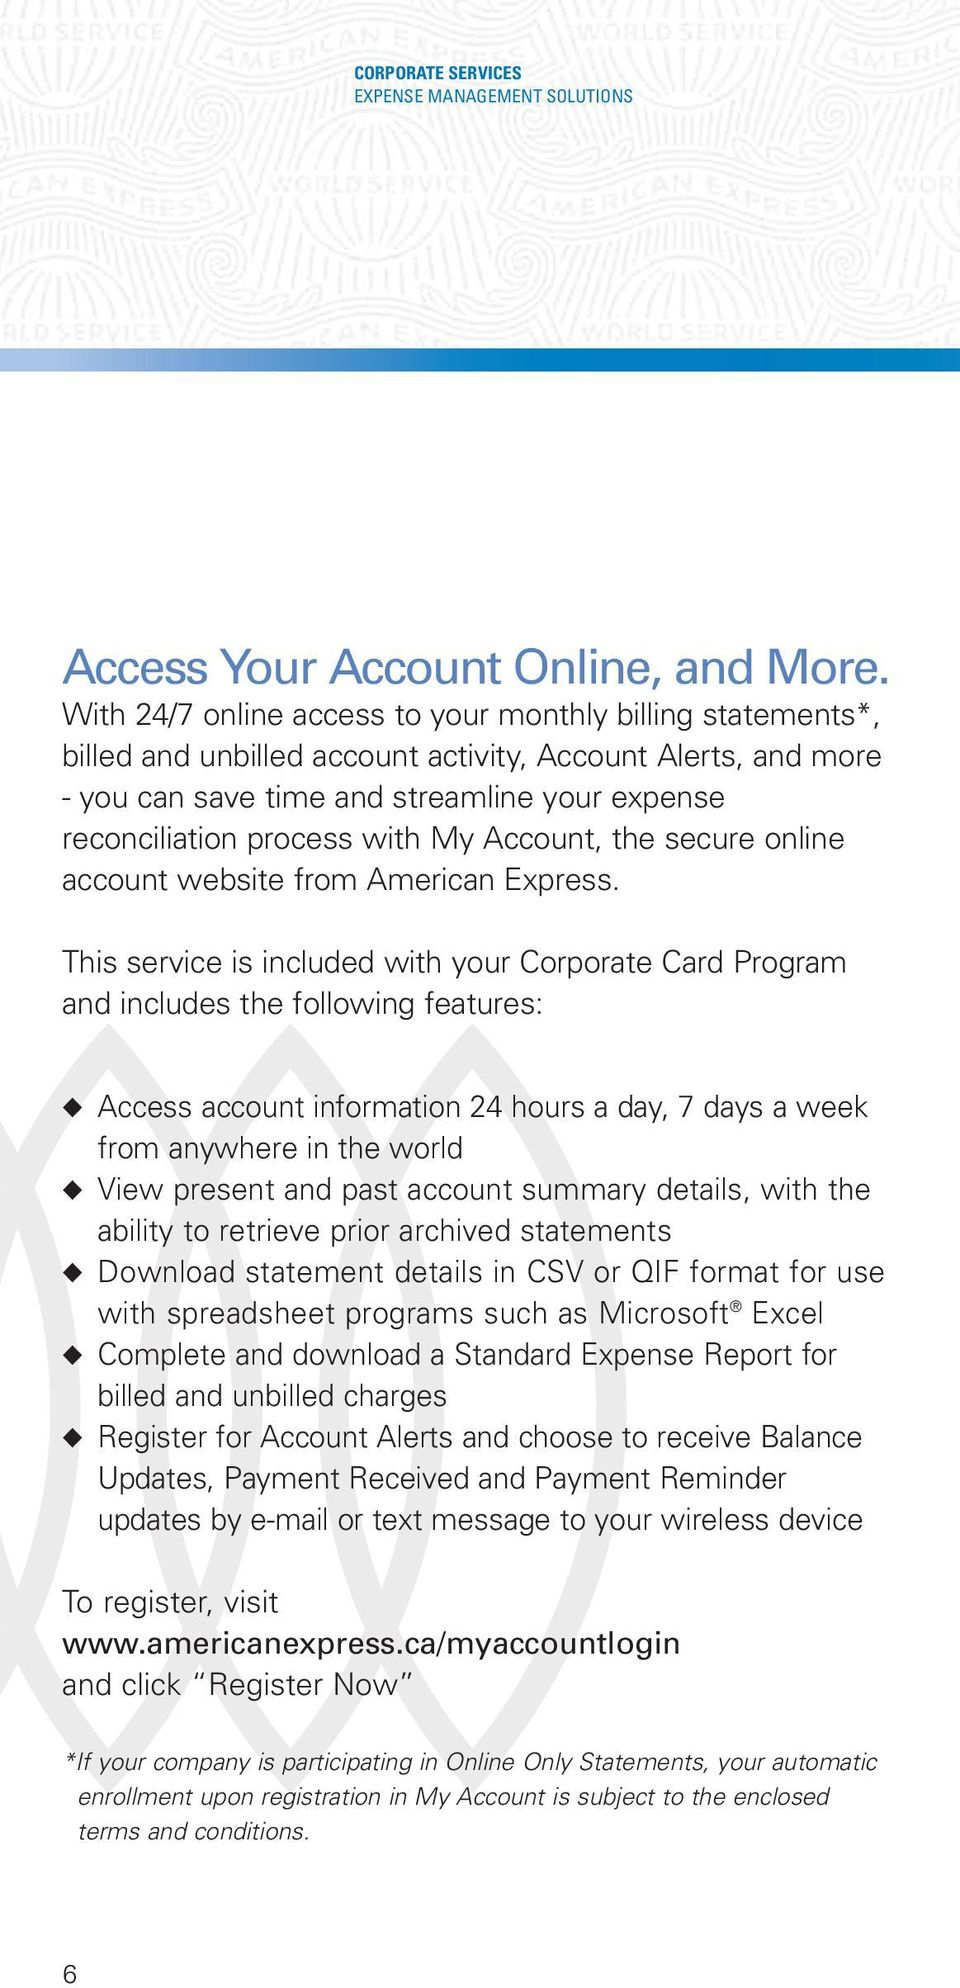 My Account, the secure online account website from American Express.